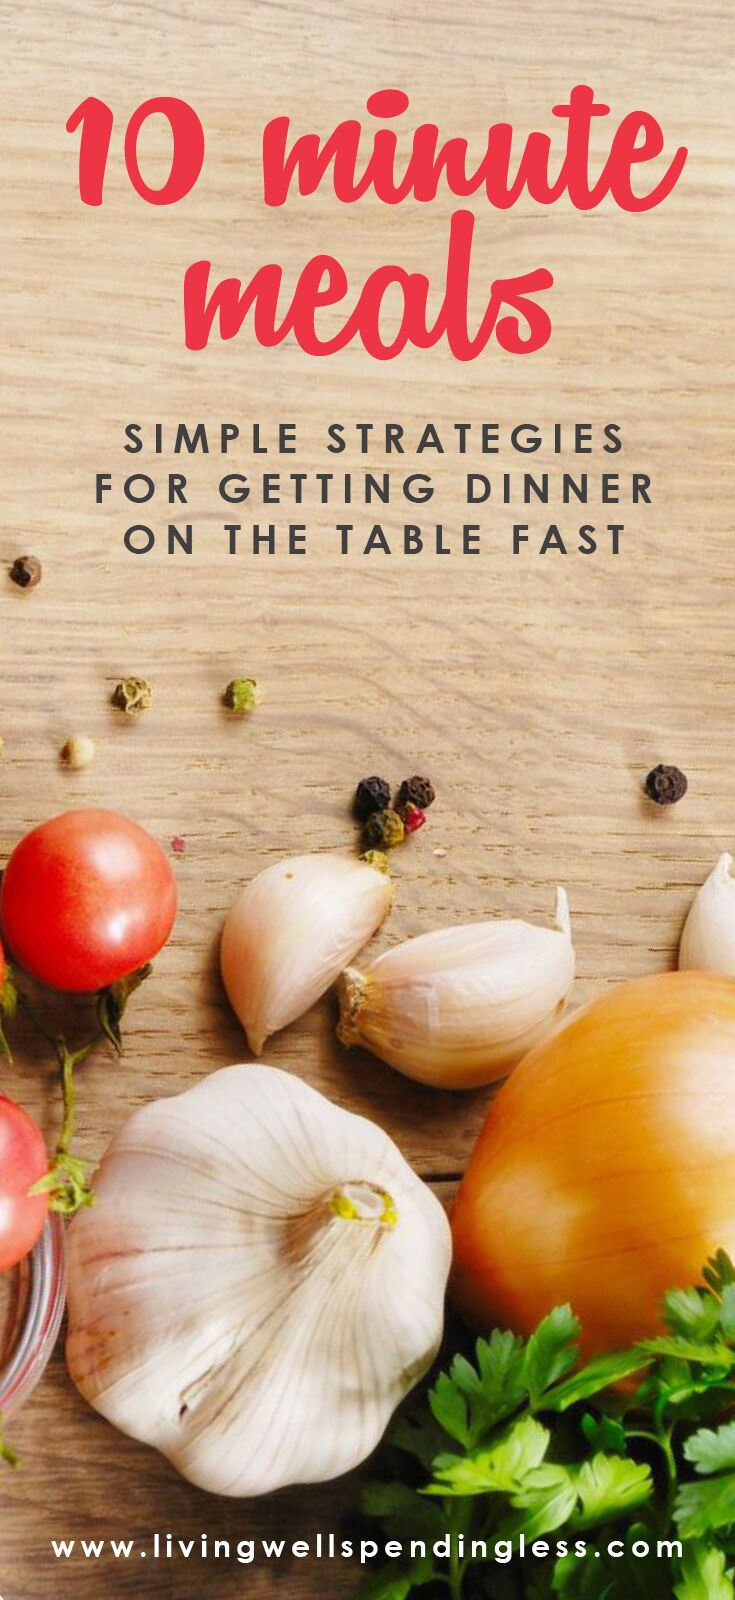 10 Minute Meal Tips | Simple strategies for getting dinner on the table fast